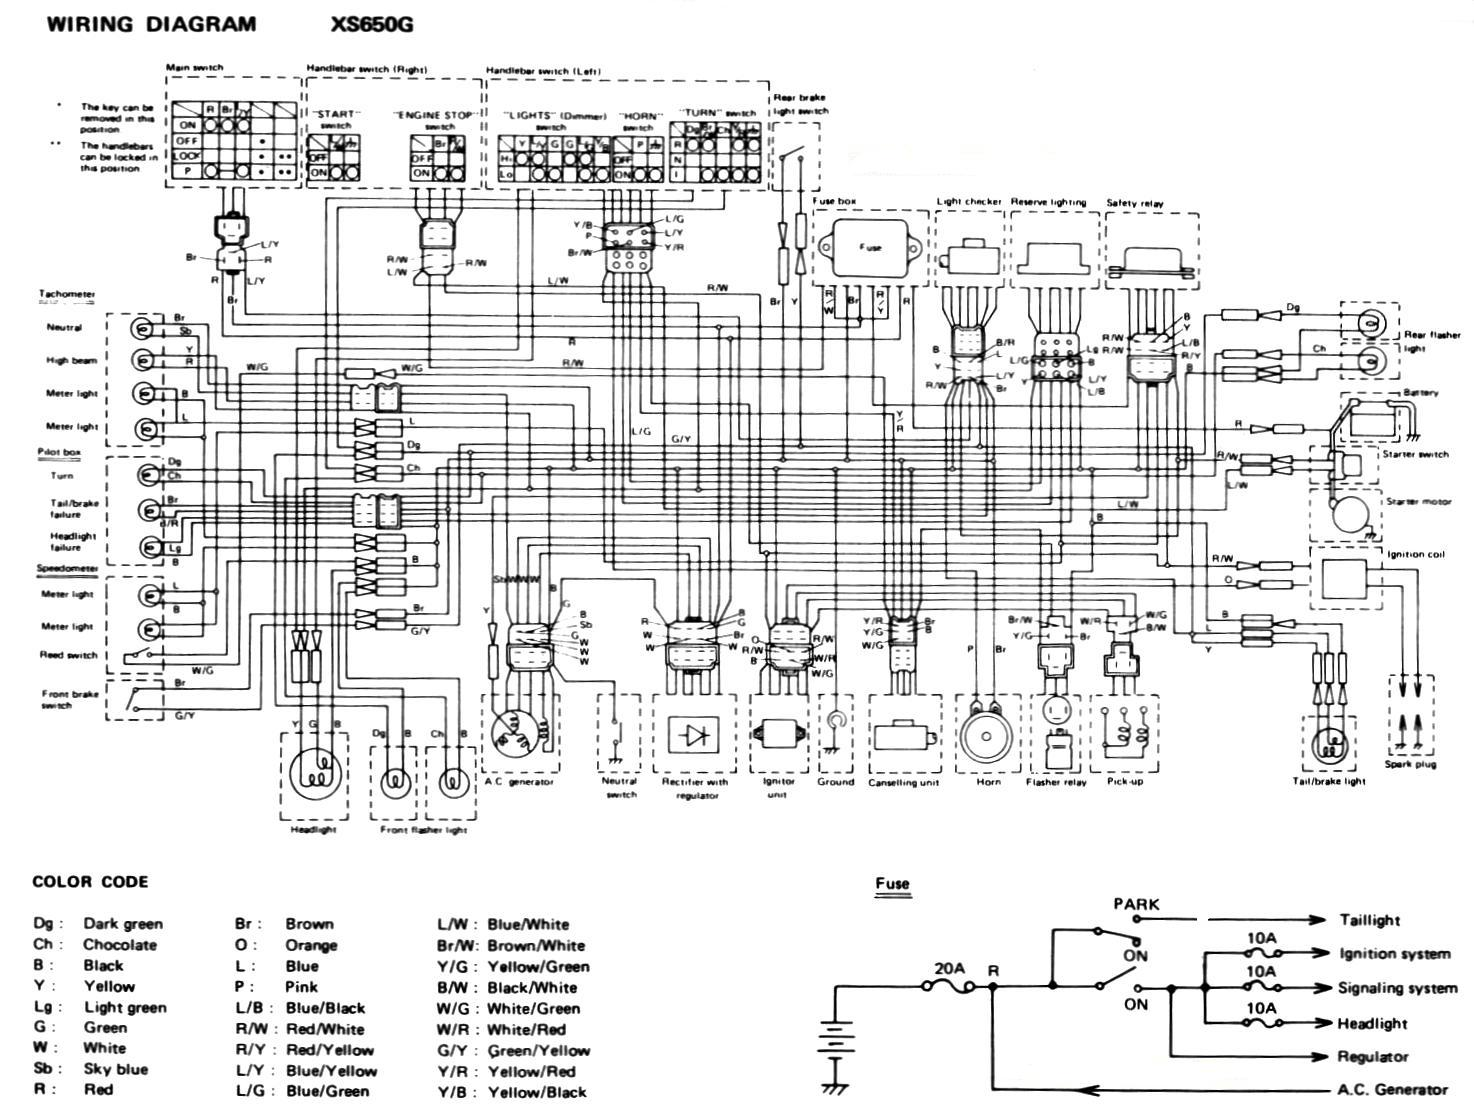 Wiring Diagrams 1982 Gpz 750 Diagram Schematic